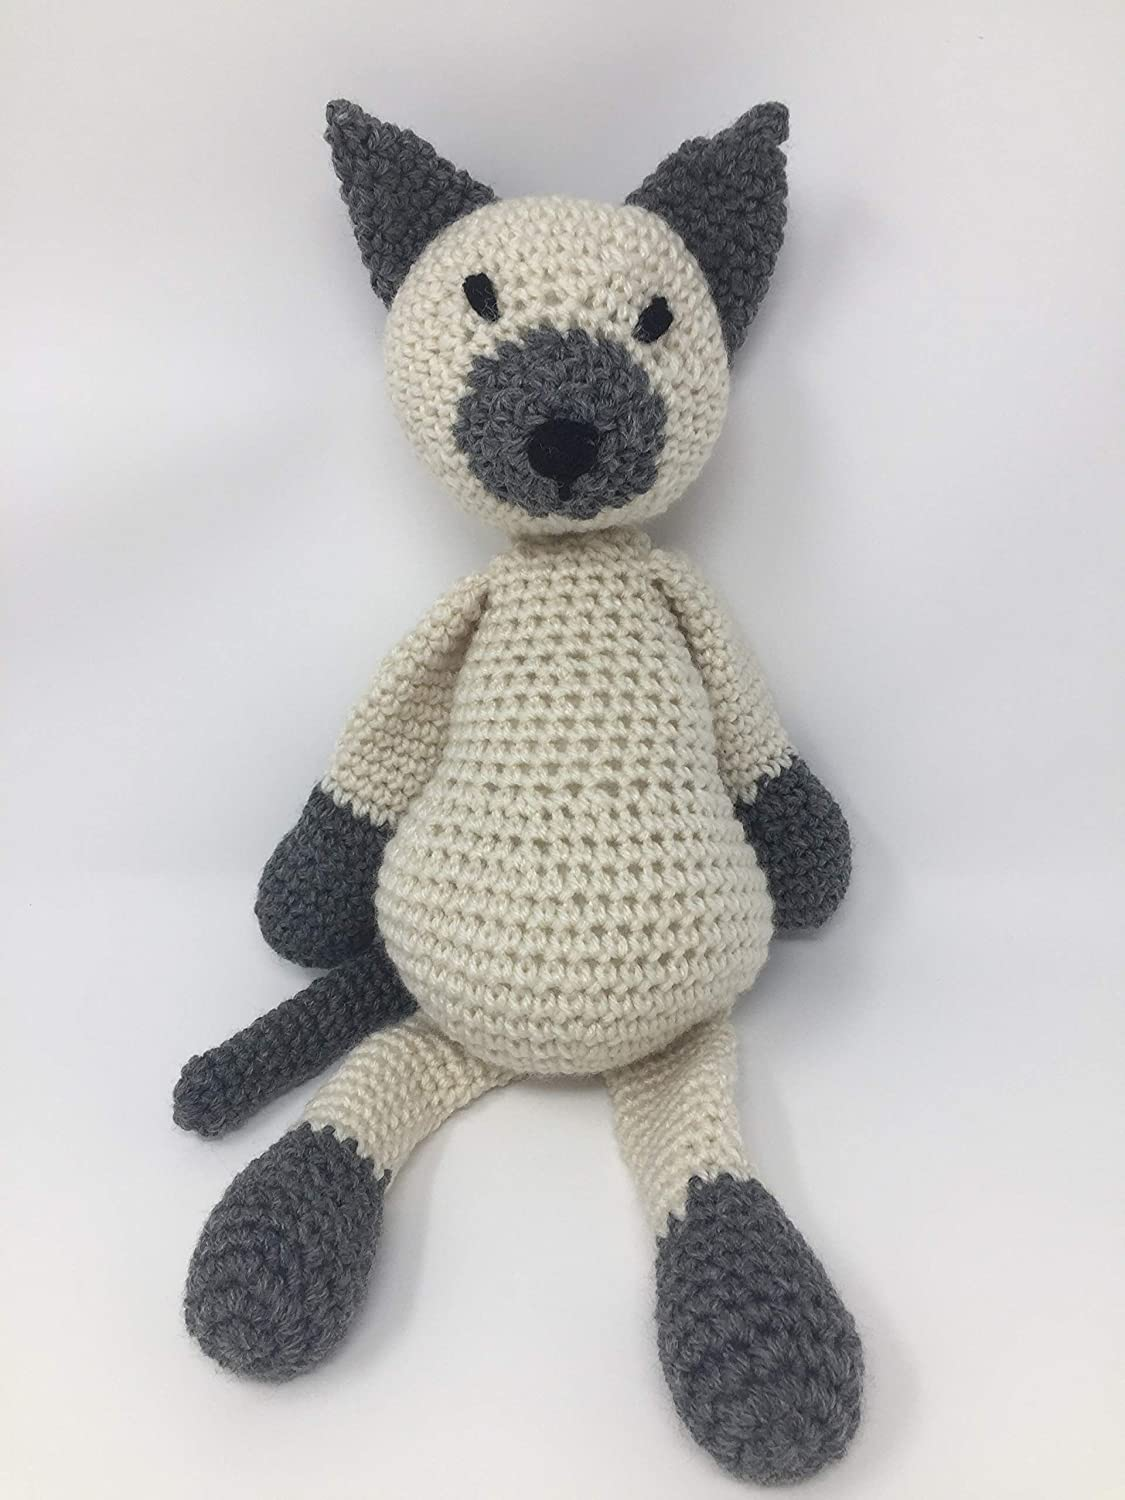 Free crochet pattern for Jughead keychain, very adorable and ... | 1500x1125